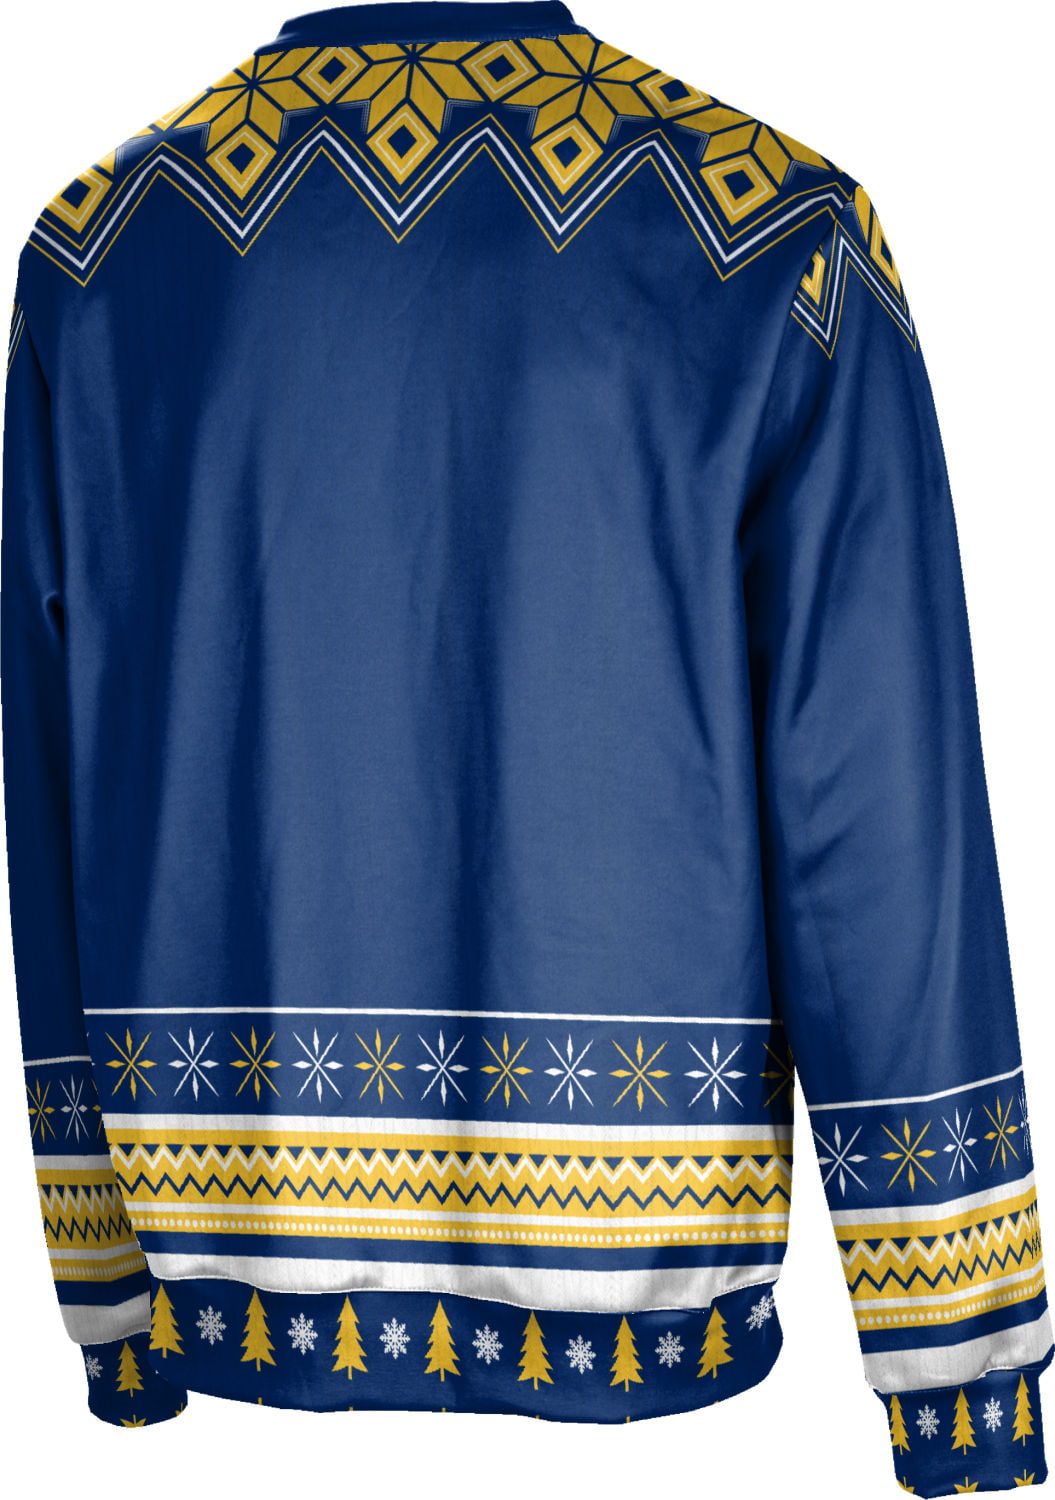 Apparel MU ProSphere Men's Marquette University Ugly Holiday Festive Sweater